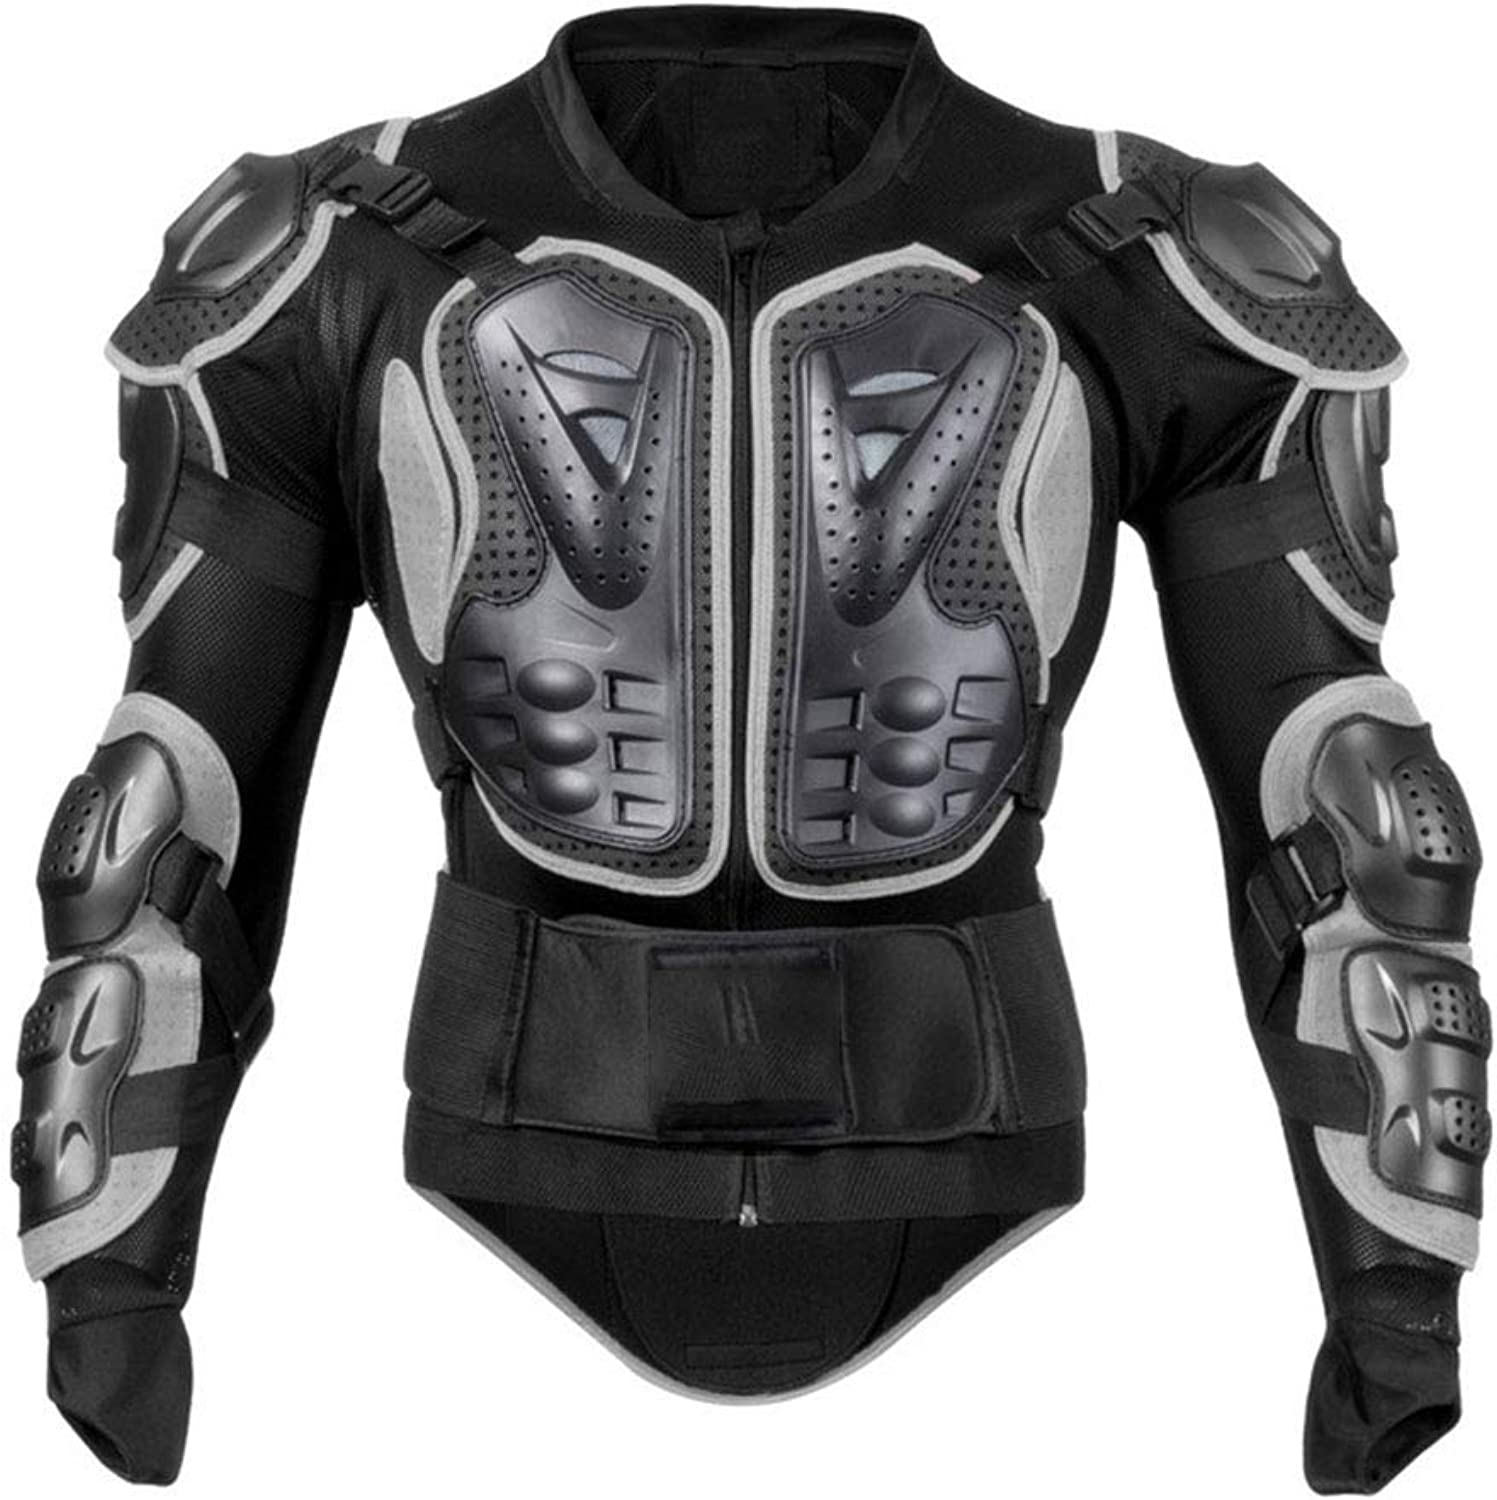 Motorcycle Predective Gear Racing Armor Jacket Clothing Field Hard Shell Bicycle Ski Snowboard Skating